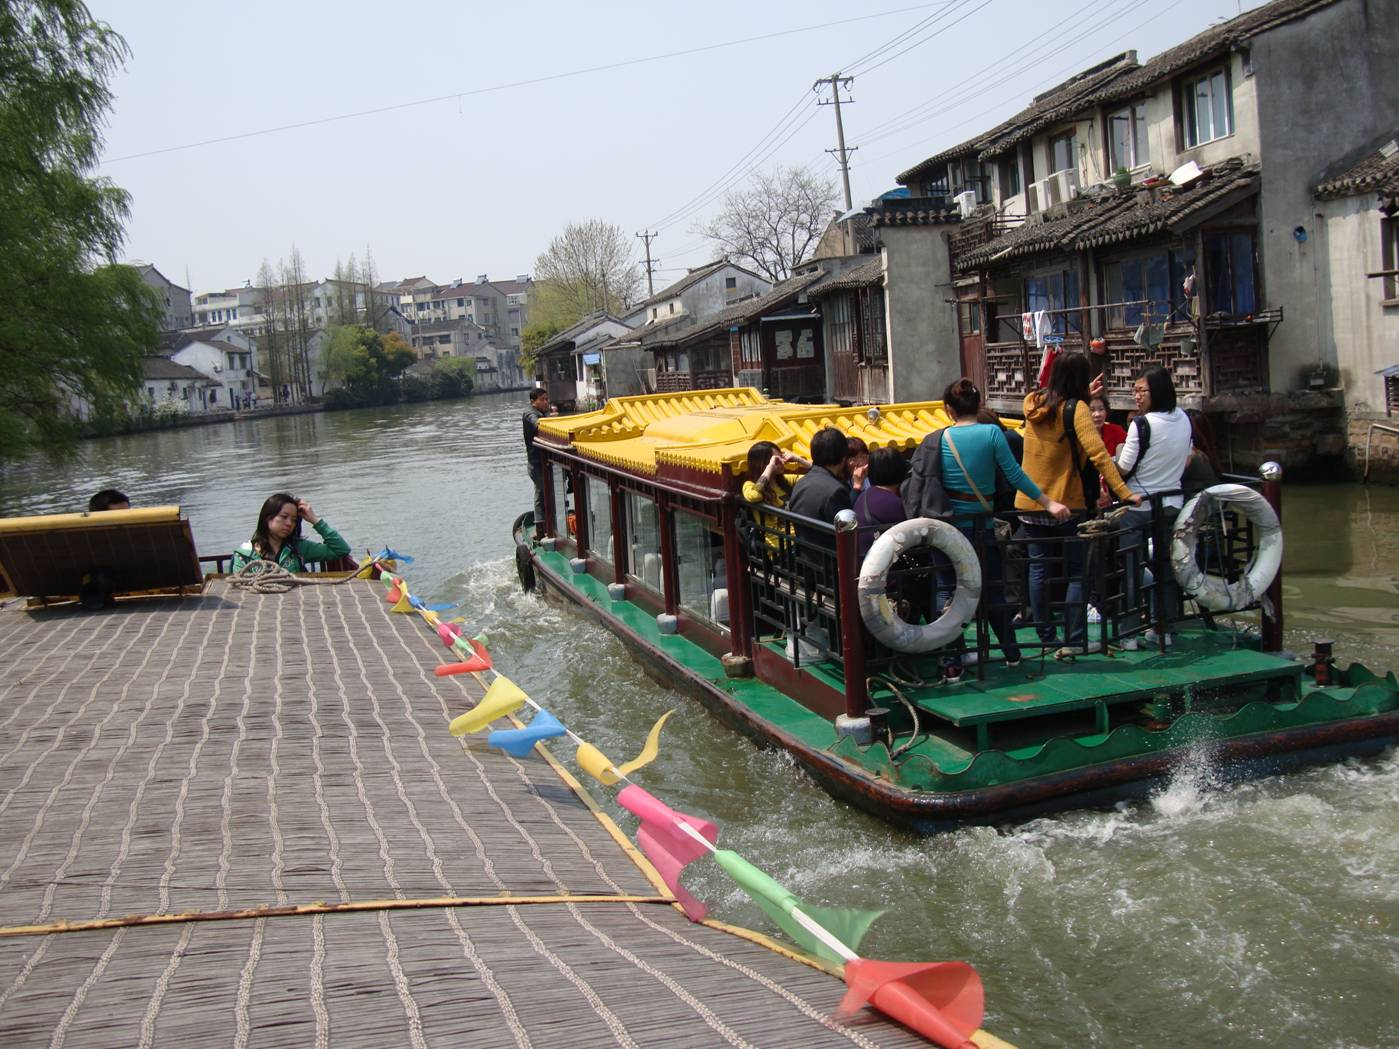 Picture:  We pass another tour boat on the canal.  Suzhou, China